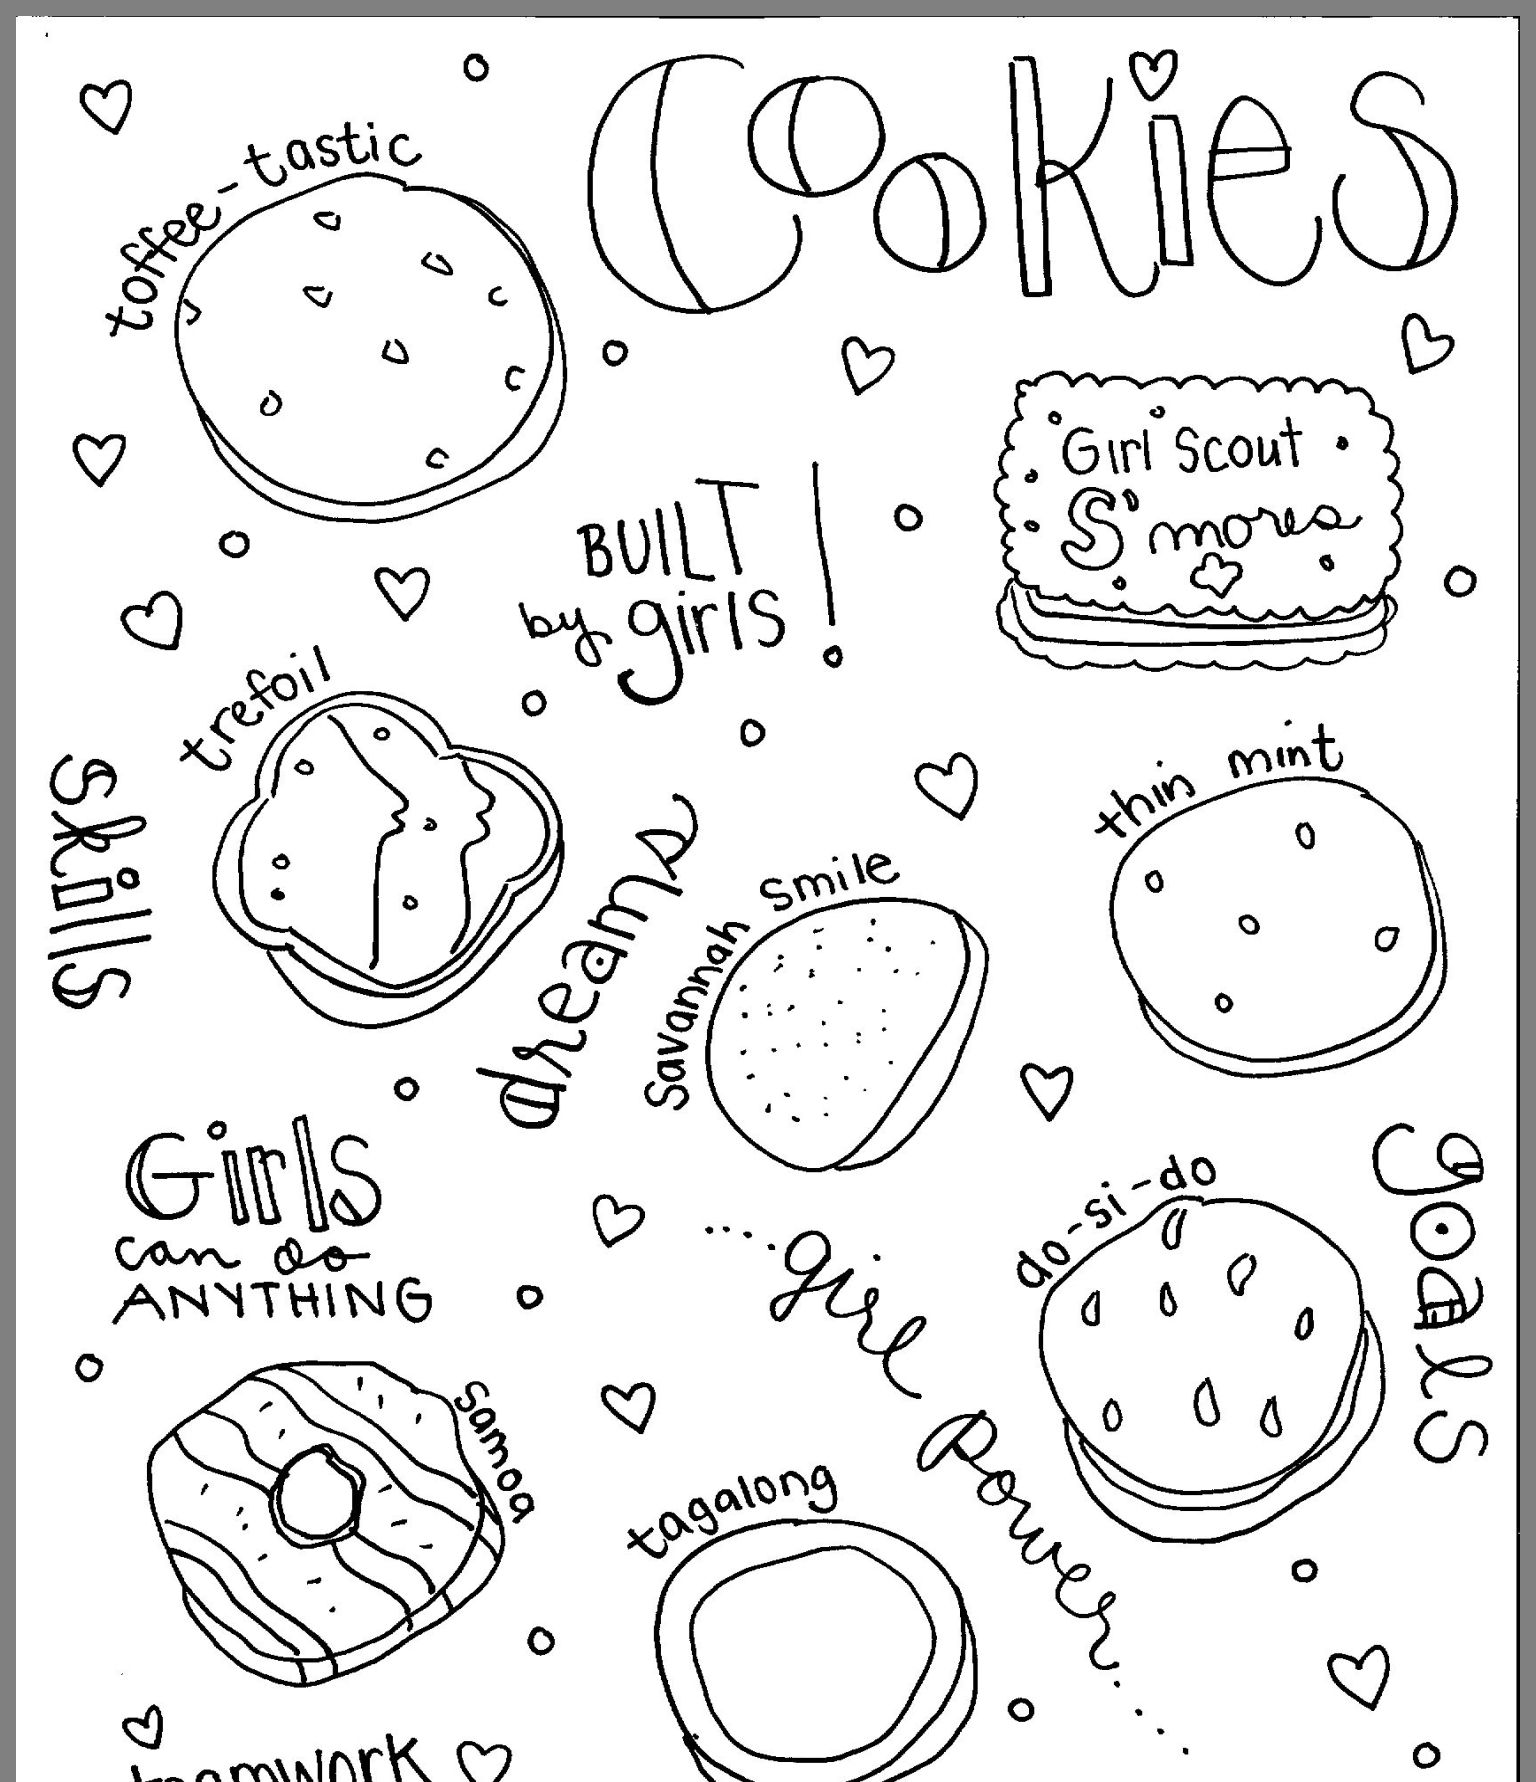 girl scout cookie coloring pages the 25 best ideas for abc girl scout cookies coloring cookie pages coloring girl scout